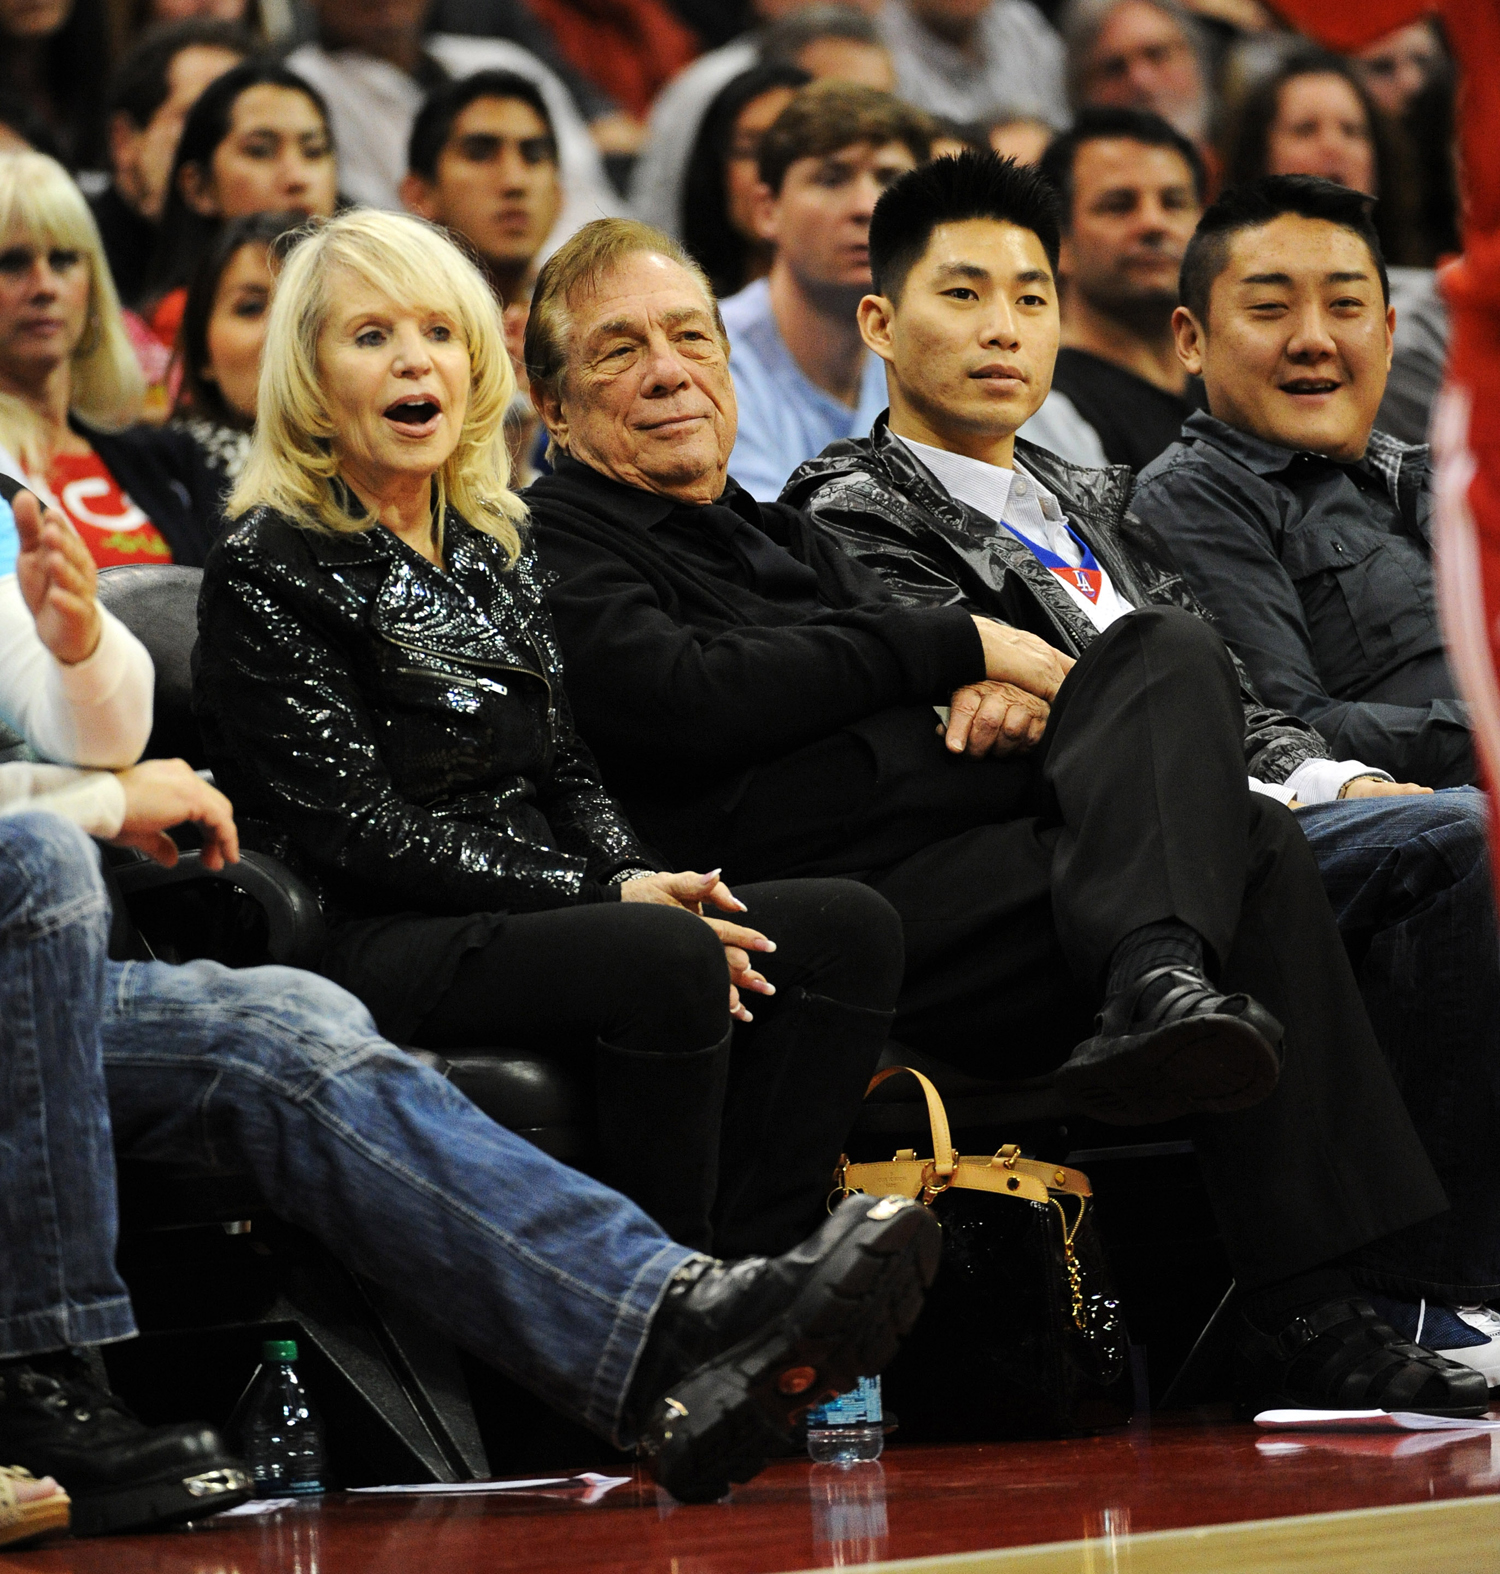 Clippers Owner Donald Sterling and wife Shelly Sterling watch as the The Los Angeles Clippers host the Milwaukee Bucks at the Staples Center in Los Angeles, CA.